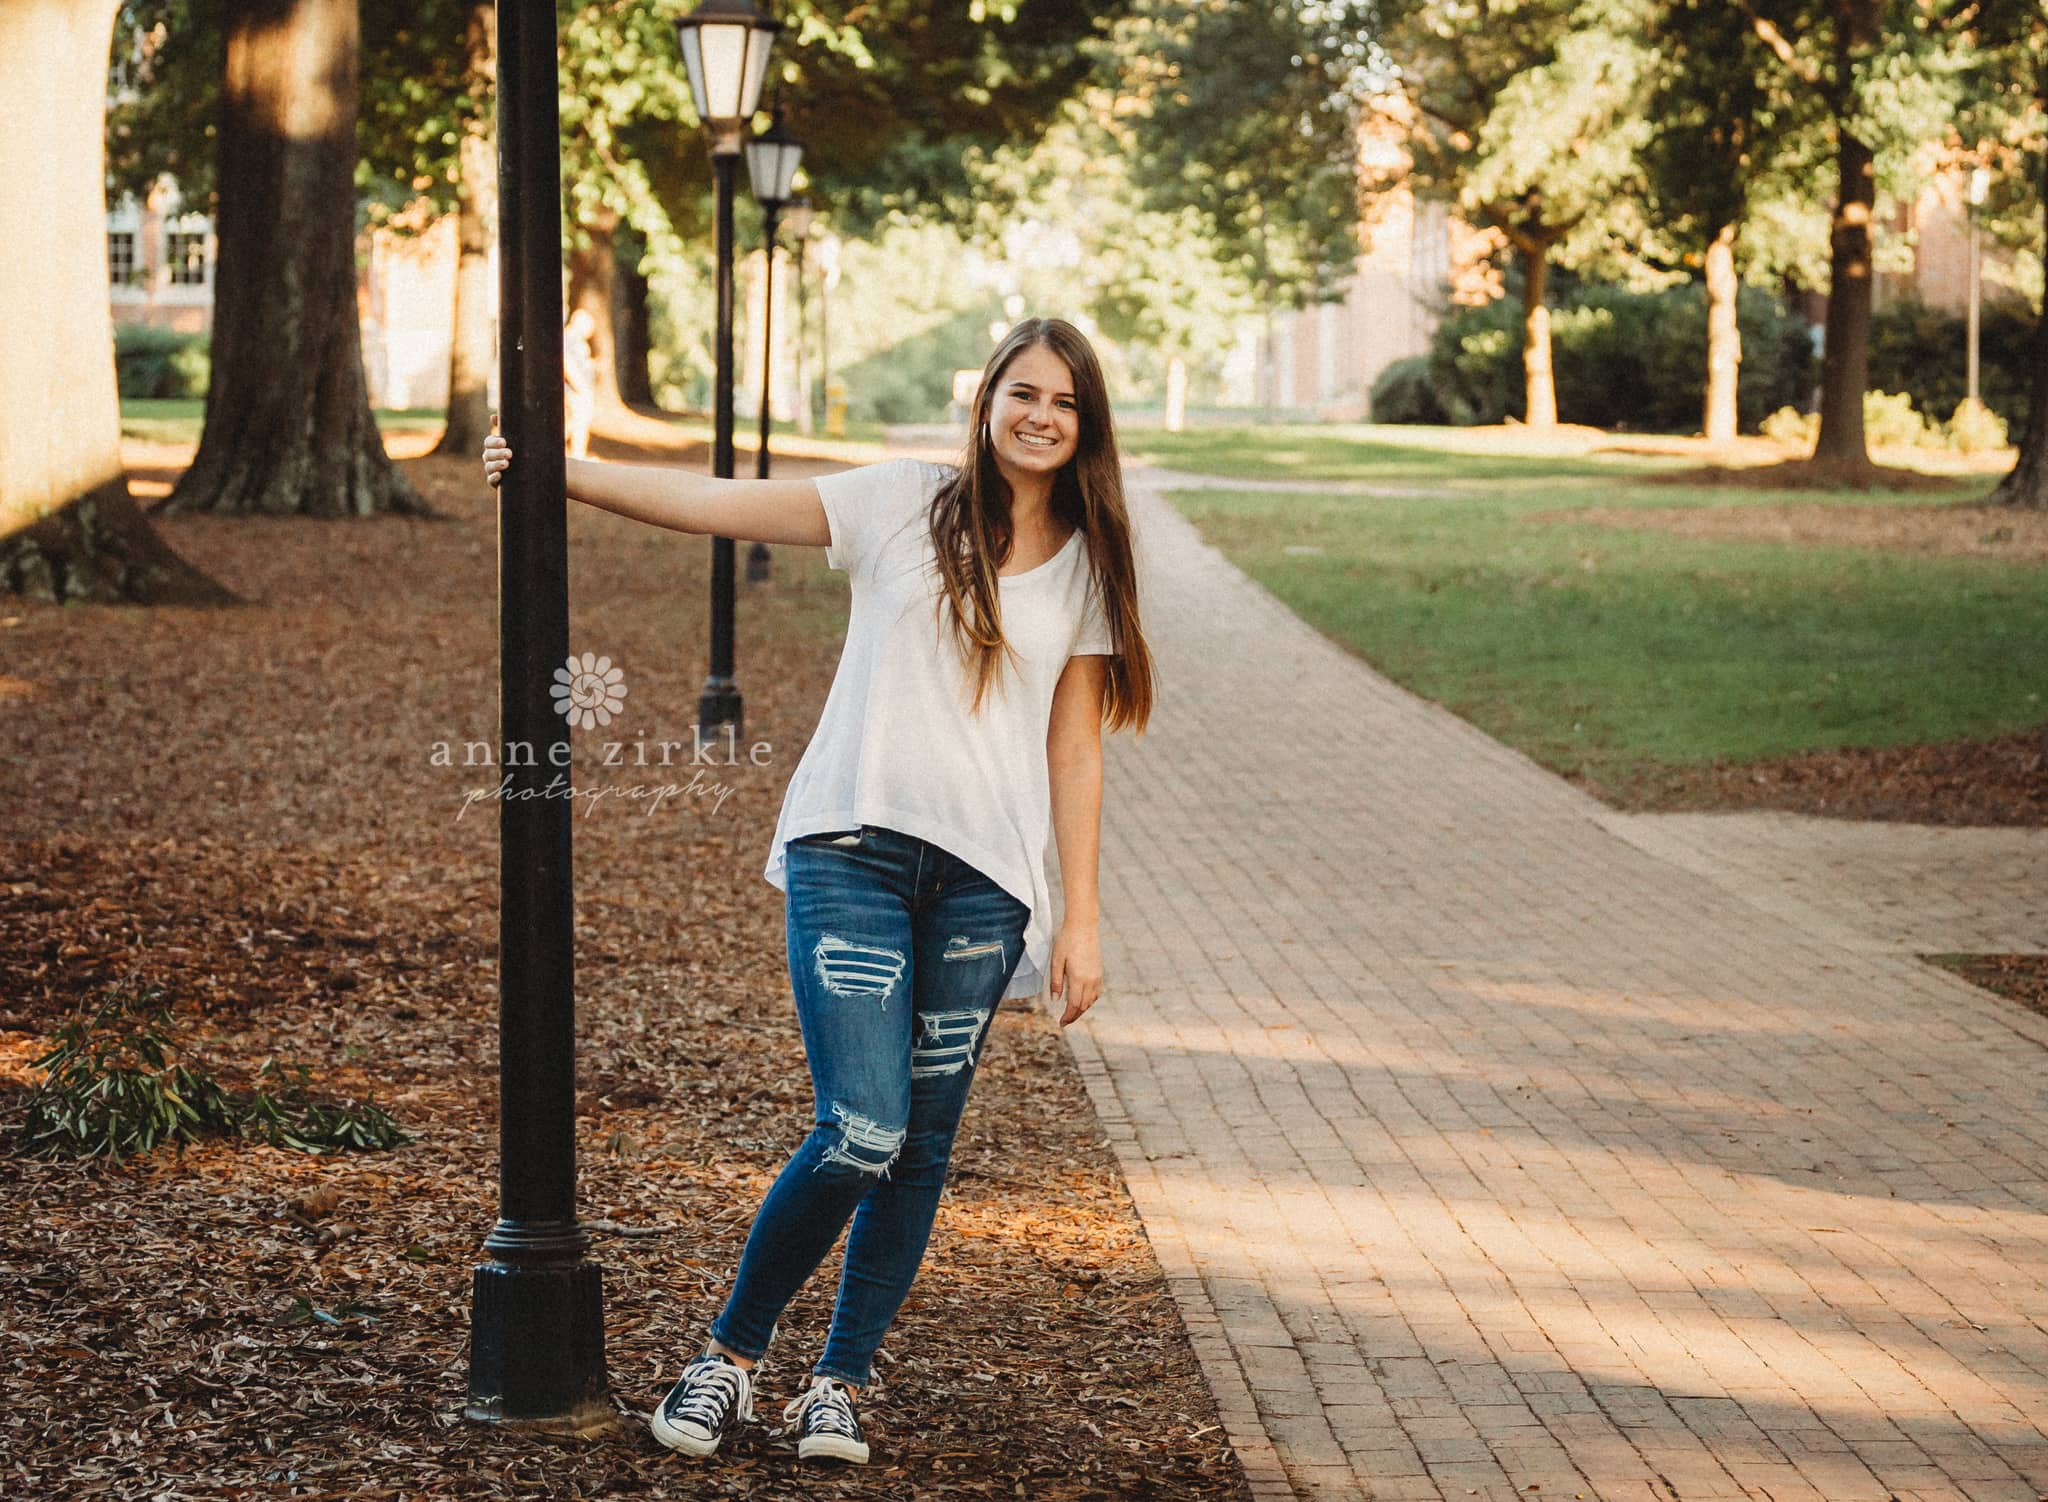 Senior girl standing with lamp post #mooresville #northcarolina #davidson #lakenorman #southiredell #pinelakeprep #highschool #highschoolsenior #highschoolseniors #seniors